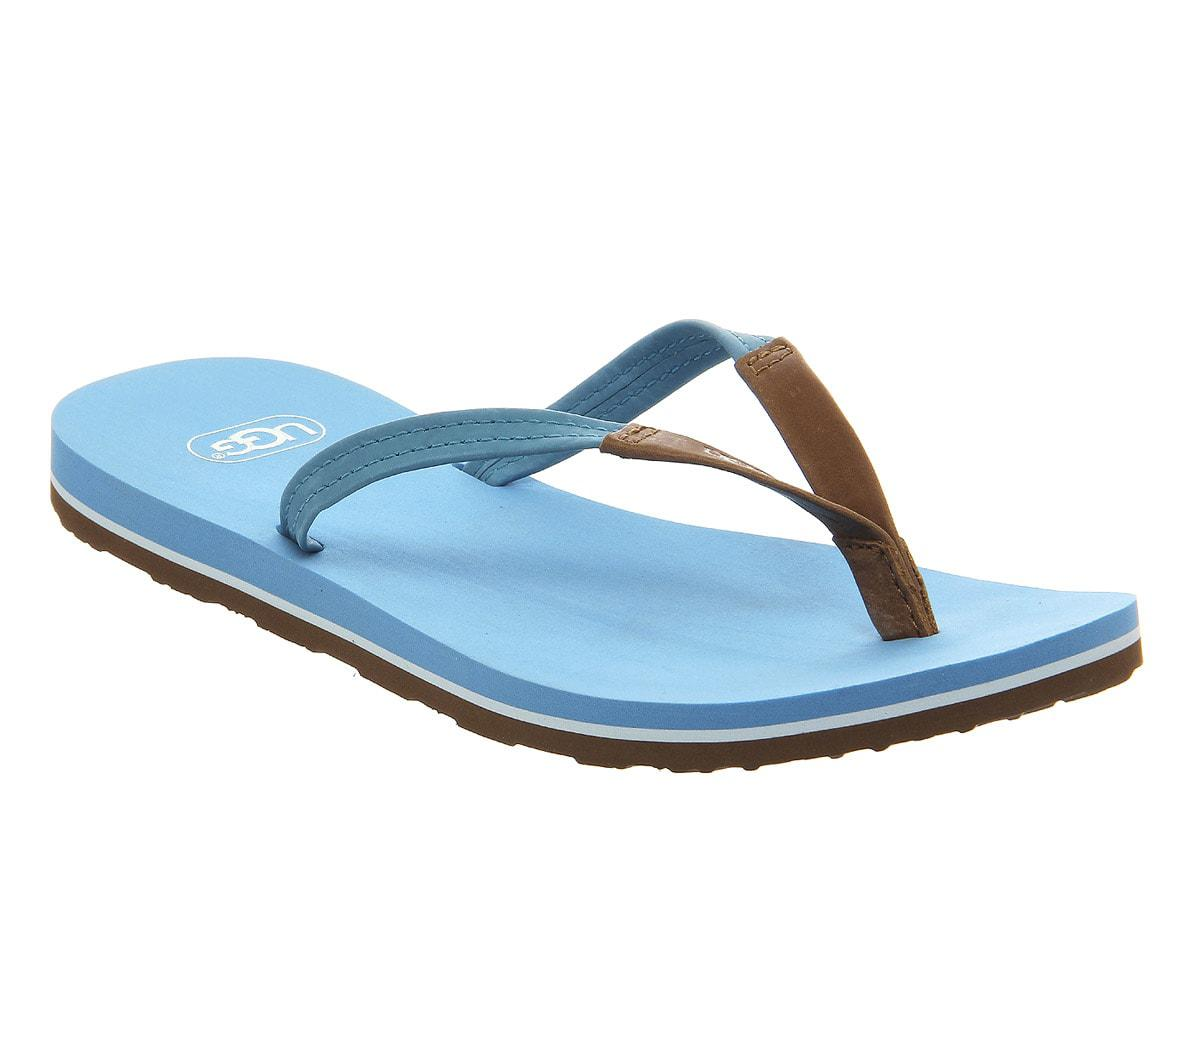 Womens Sandals UGG Magnolia Brilliant Blue Leather